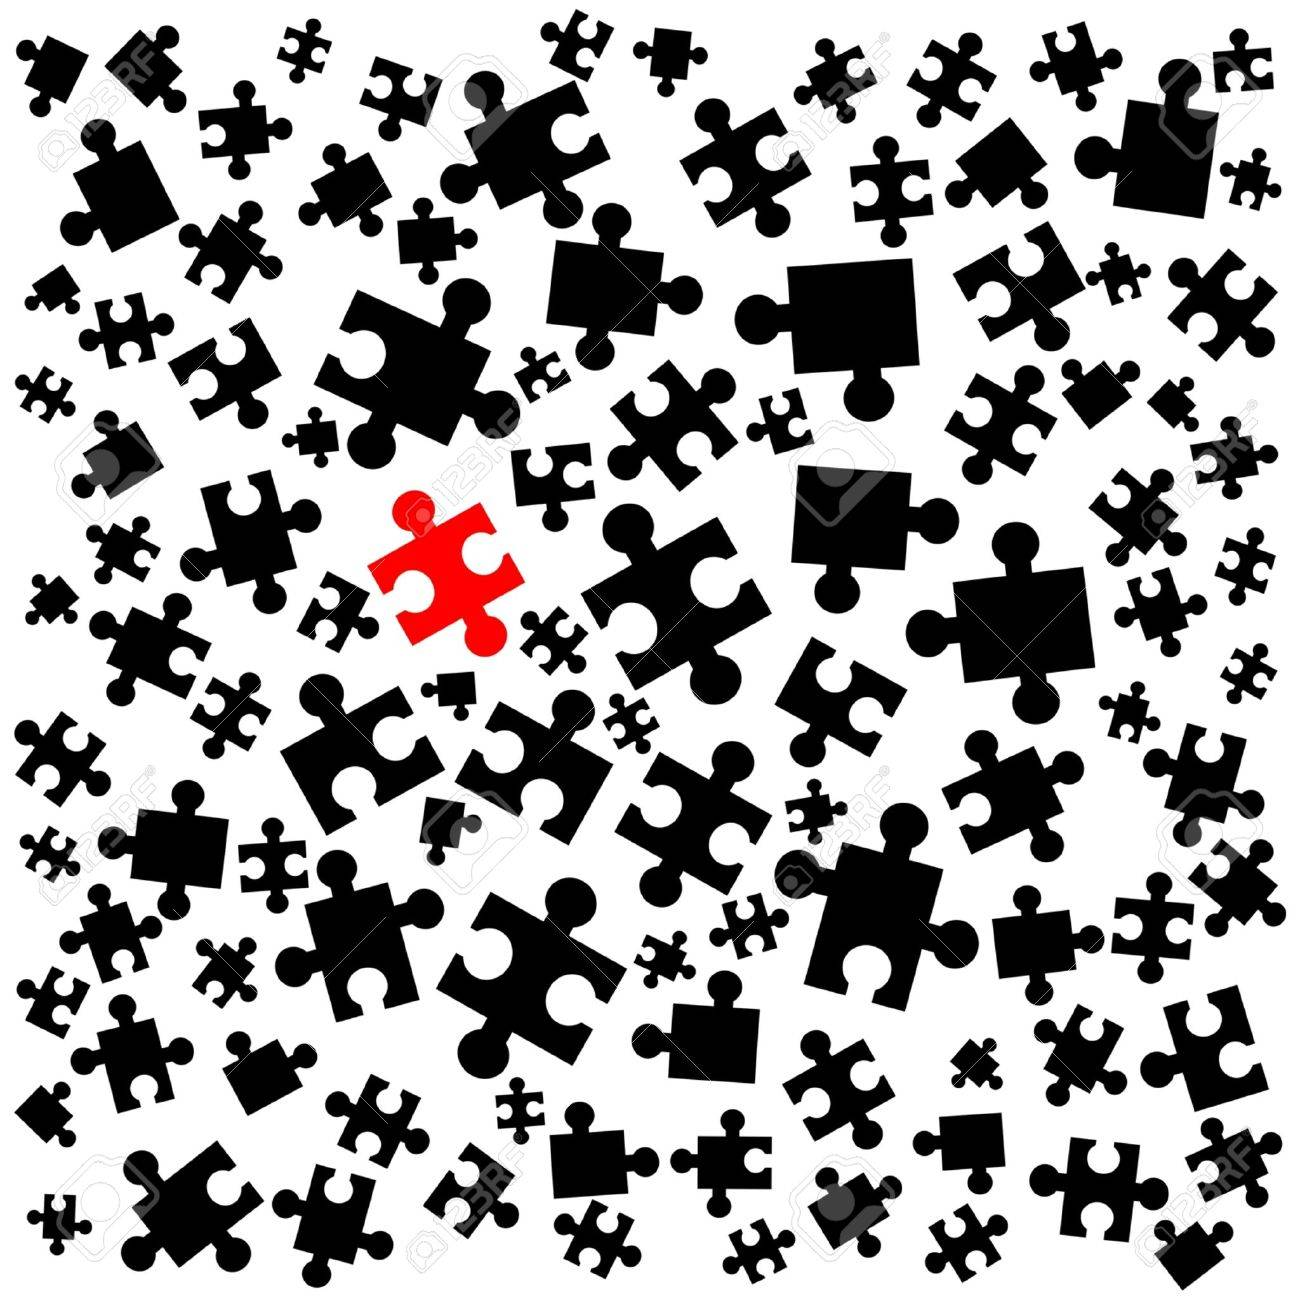 Abstract Wallpaper Of Puzzle Pieces Royalty Free Cliparts, Vectors ...